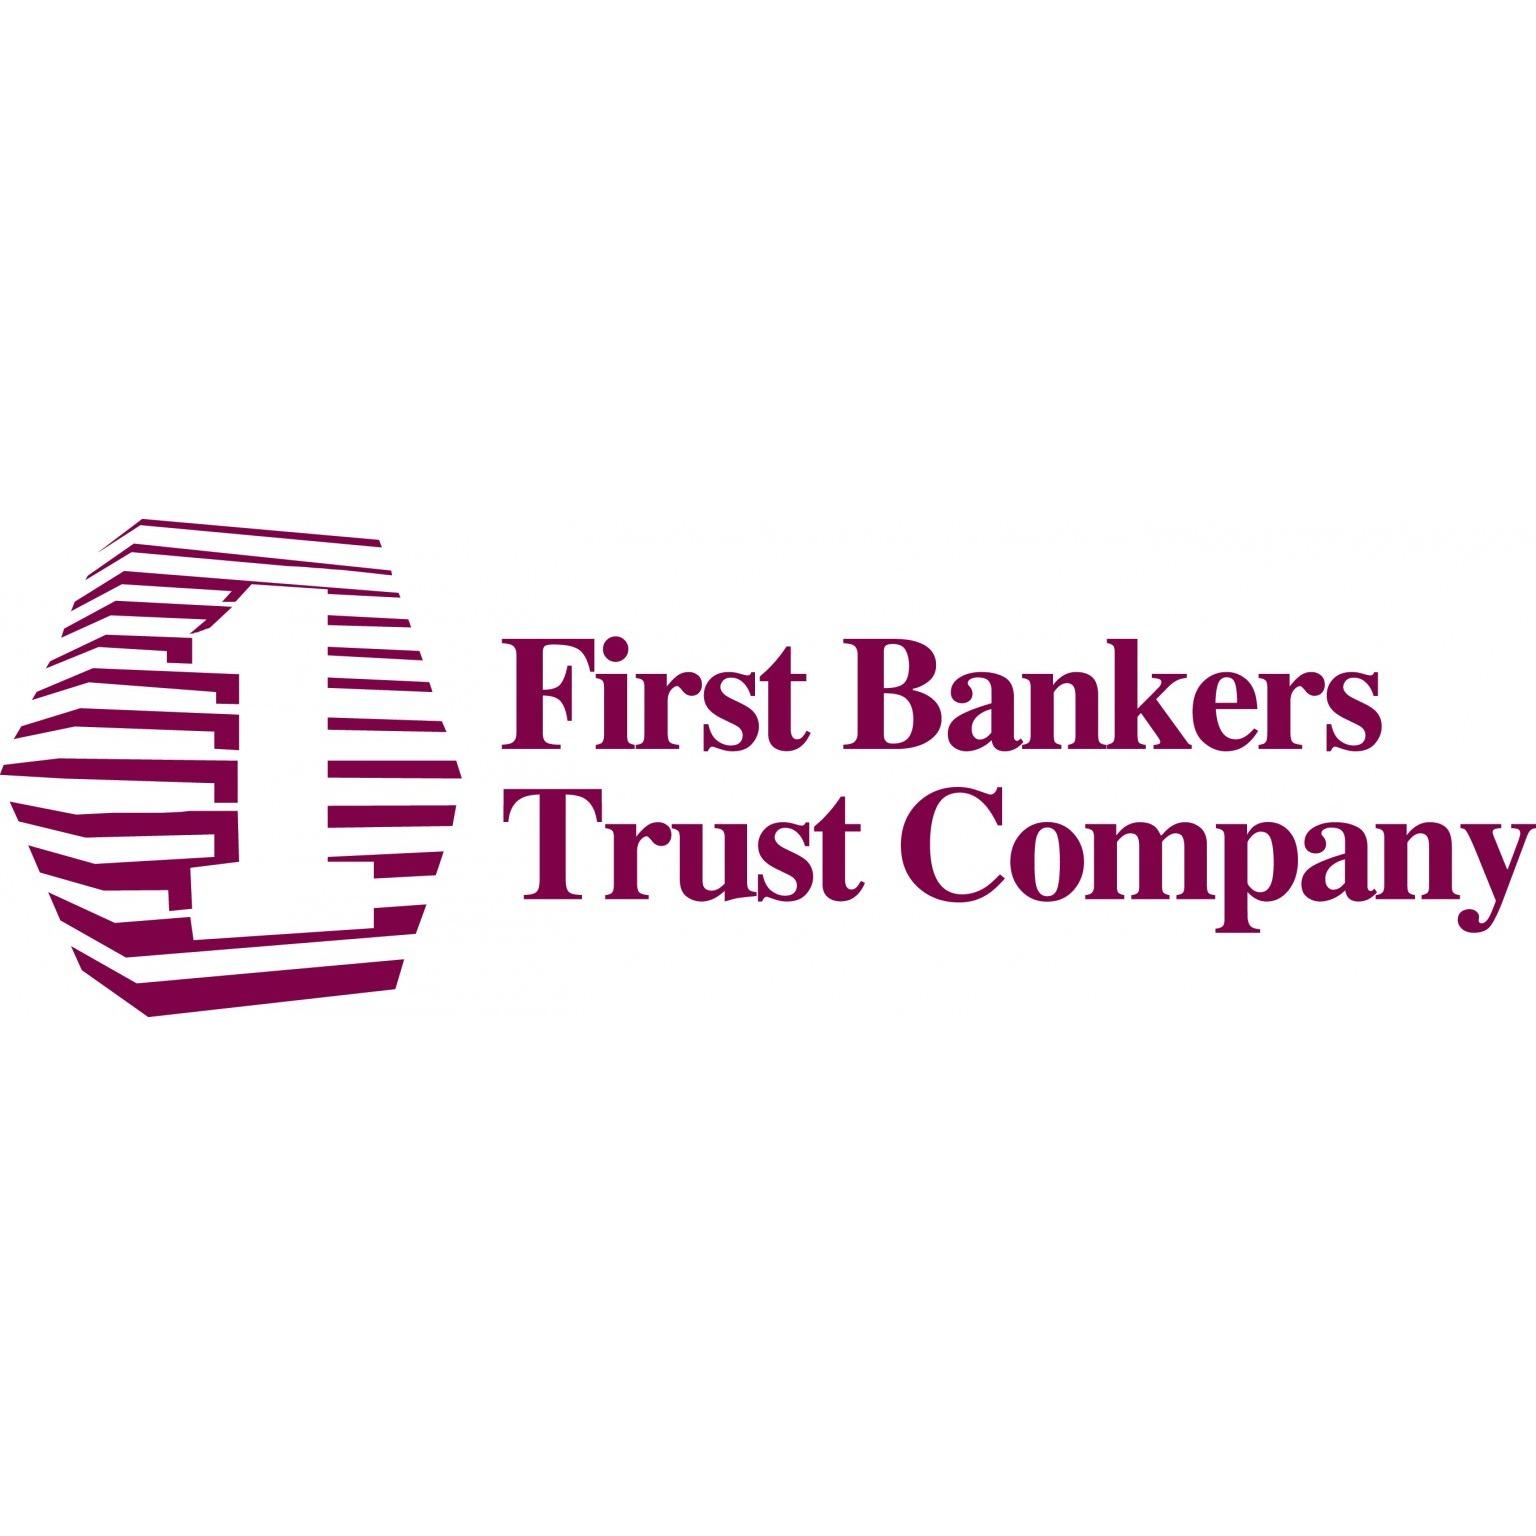 First Bankers Trust Compnay